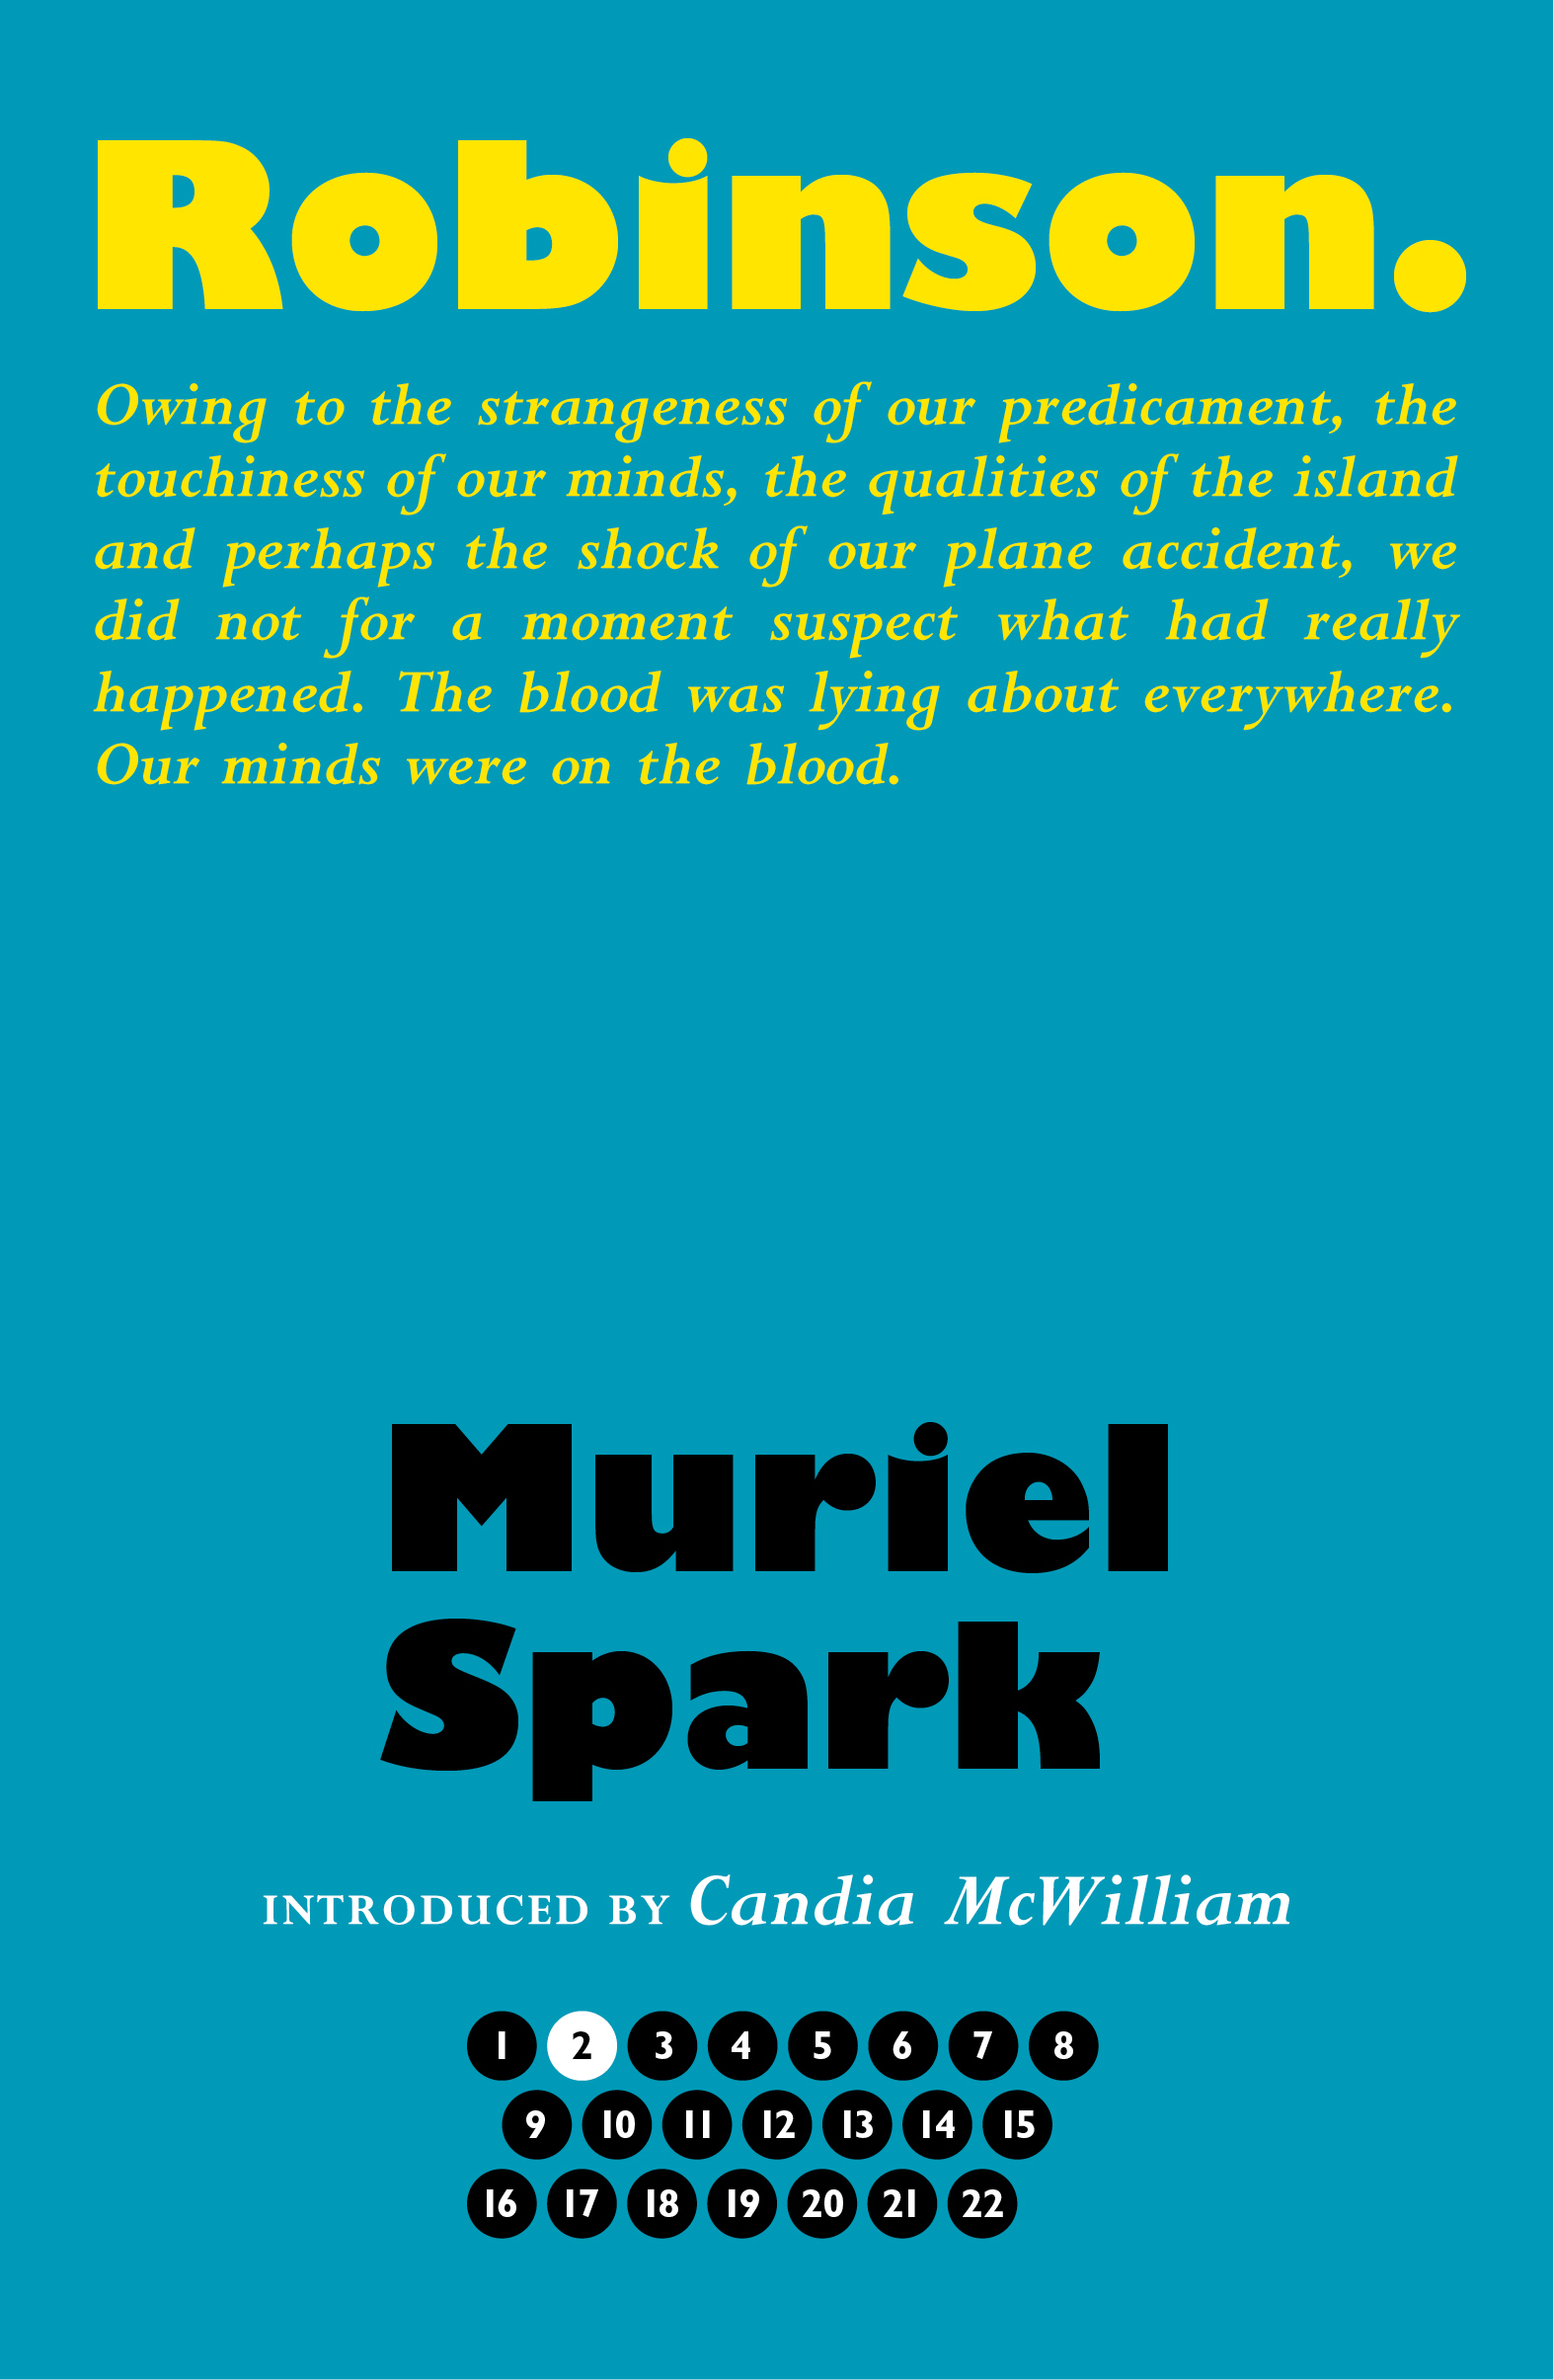 Muriel Spark Bookcover for Robinson